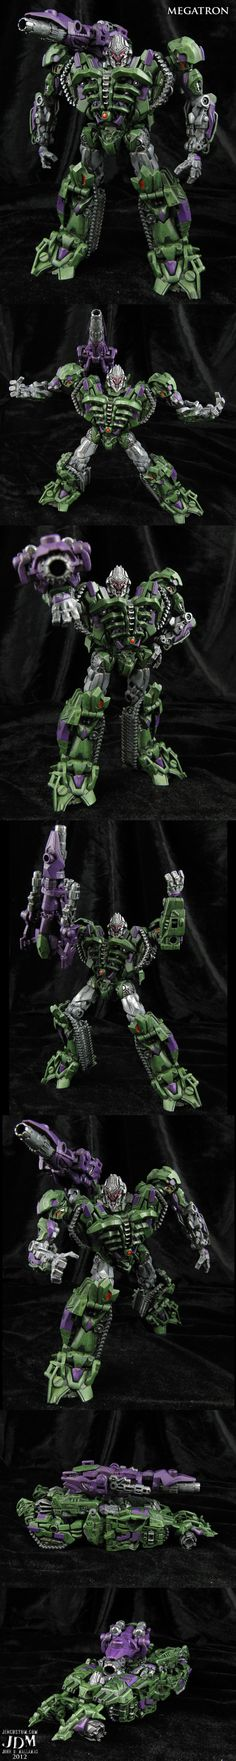 •G2 style Movie Megatron Custom Figure by Jin-Saotome